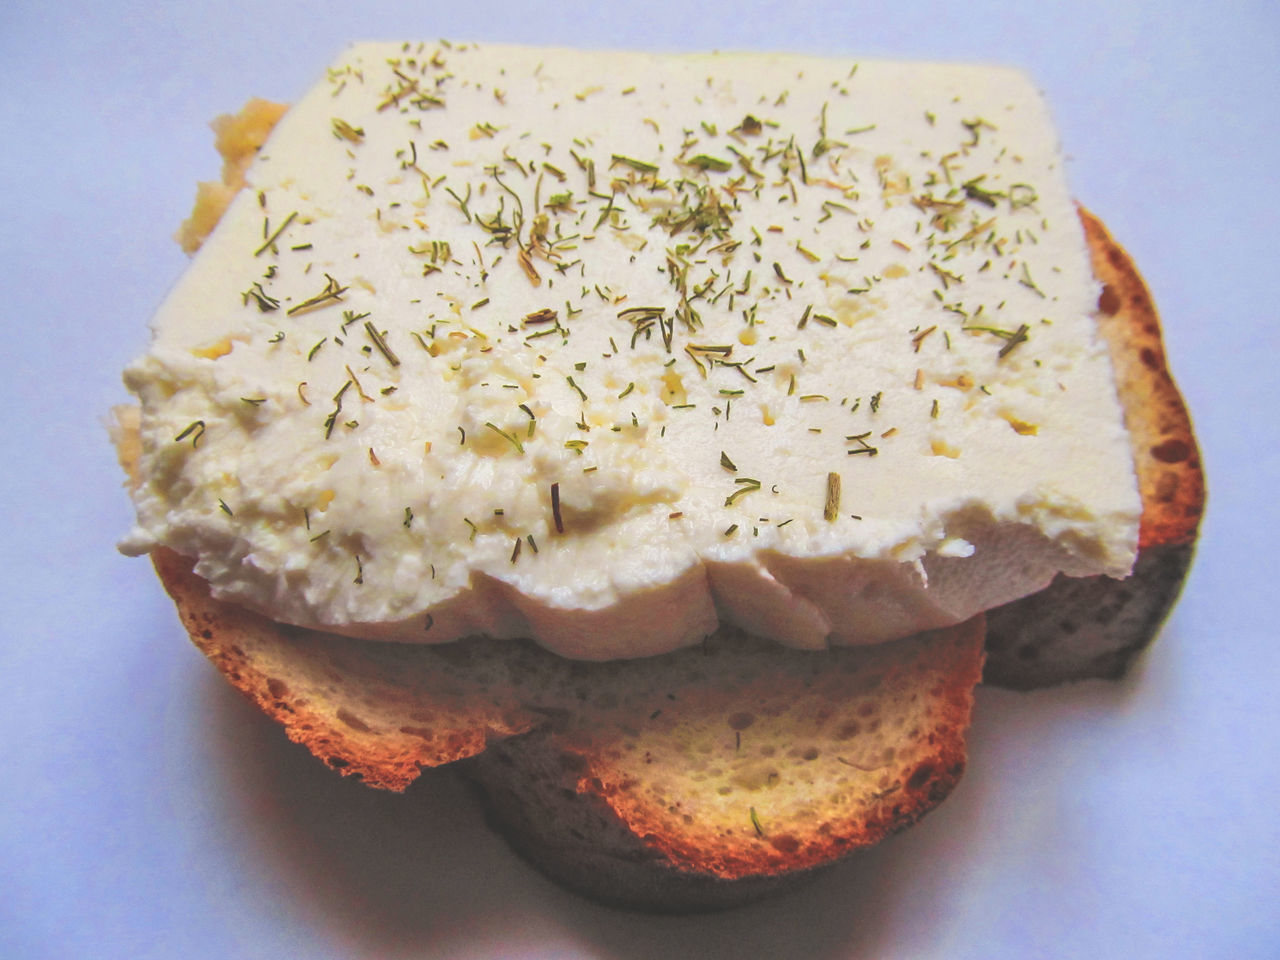 Appetizer Bread Cheese Cheese! Chopped Close-up Cooked Feta Food Food And Drink Freshness Goat Cheese Meal Plate Ready-to-eat Serving Size Snack Spices Studio Shot Unhealthy Eating White Background White Cheese